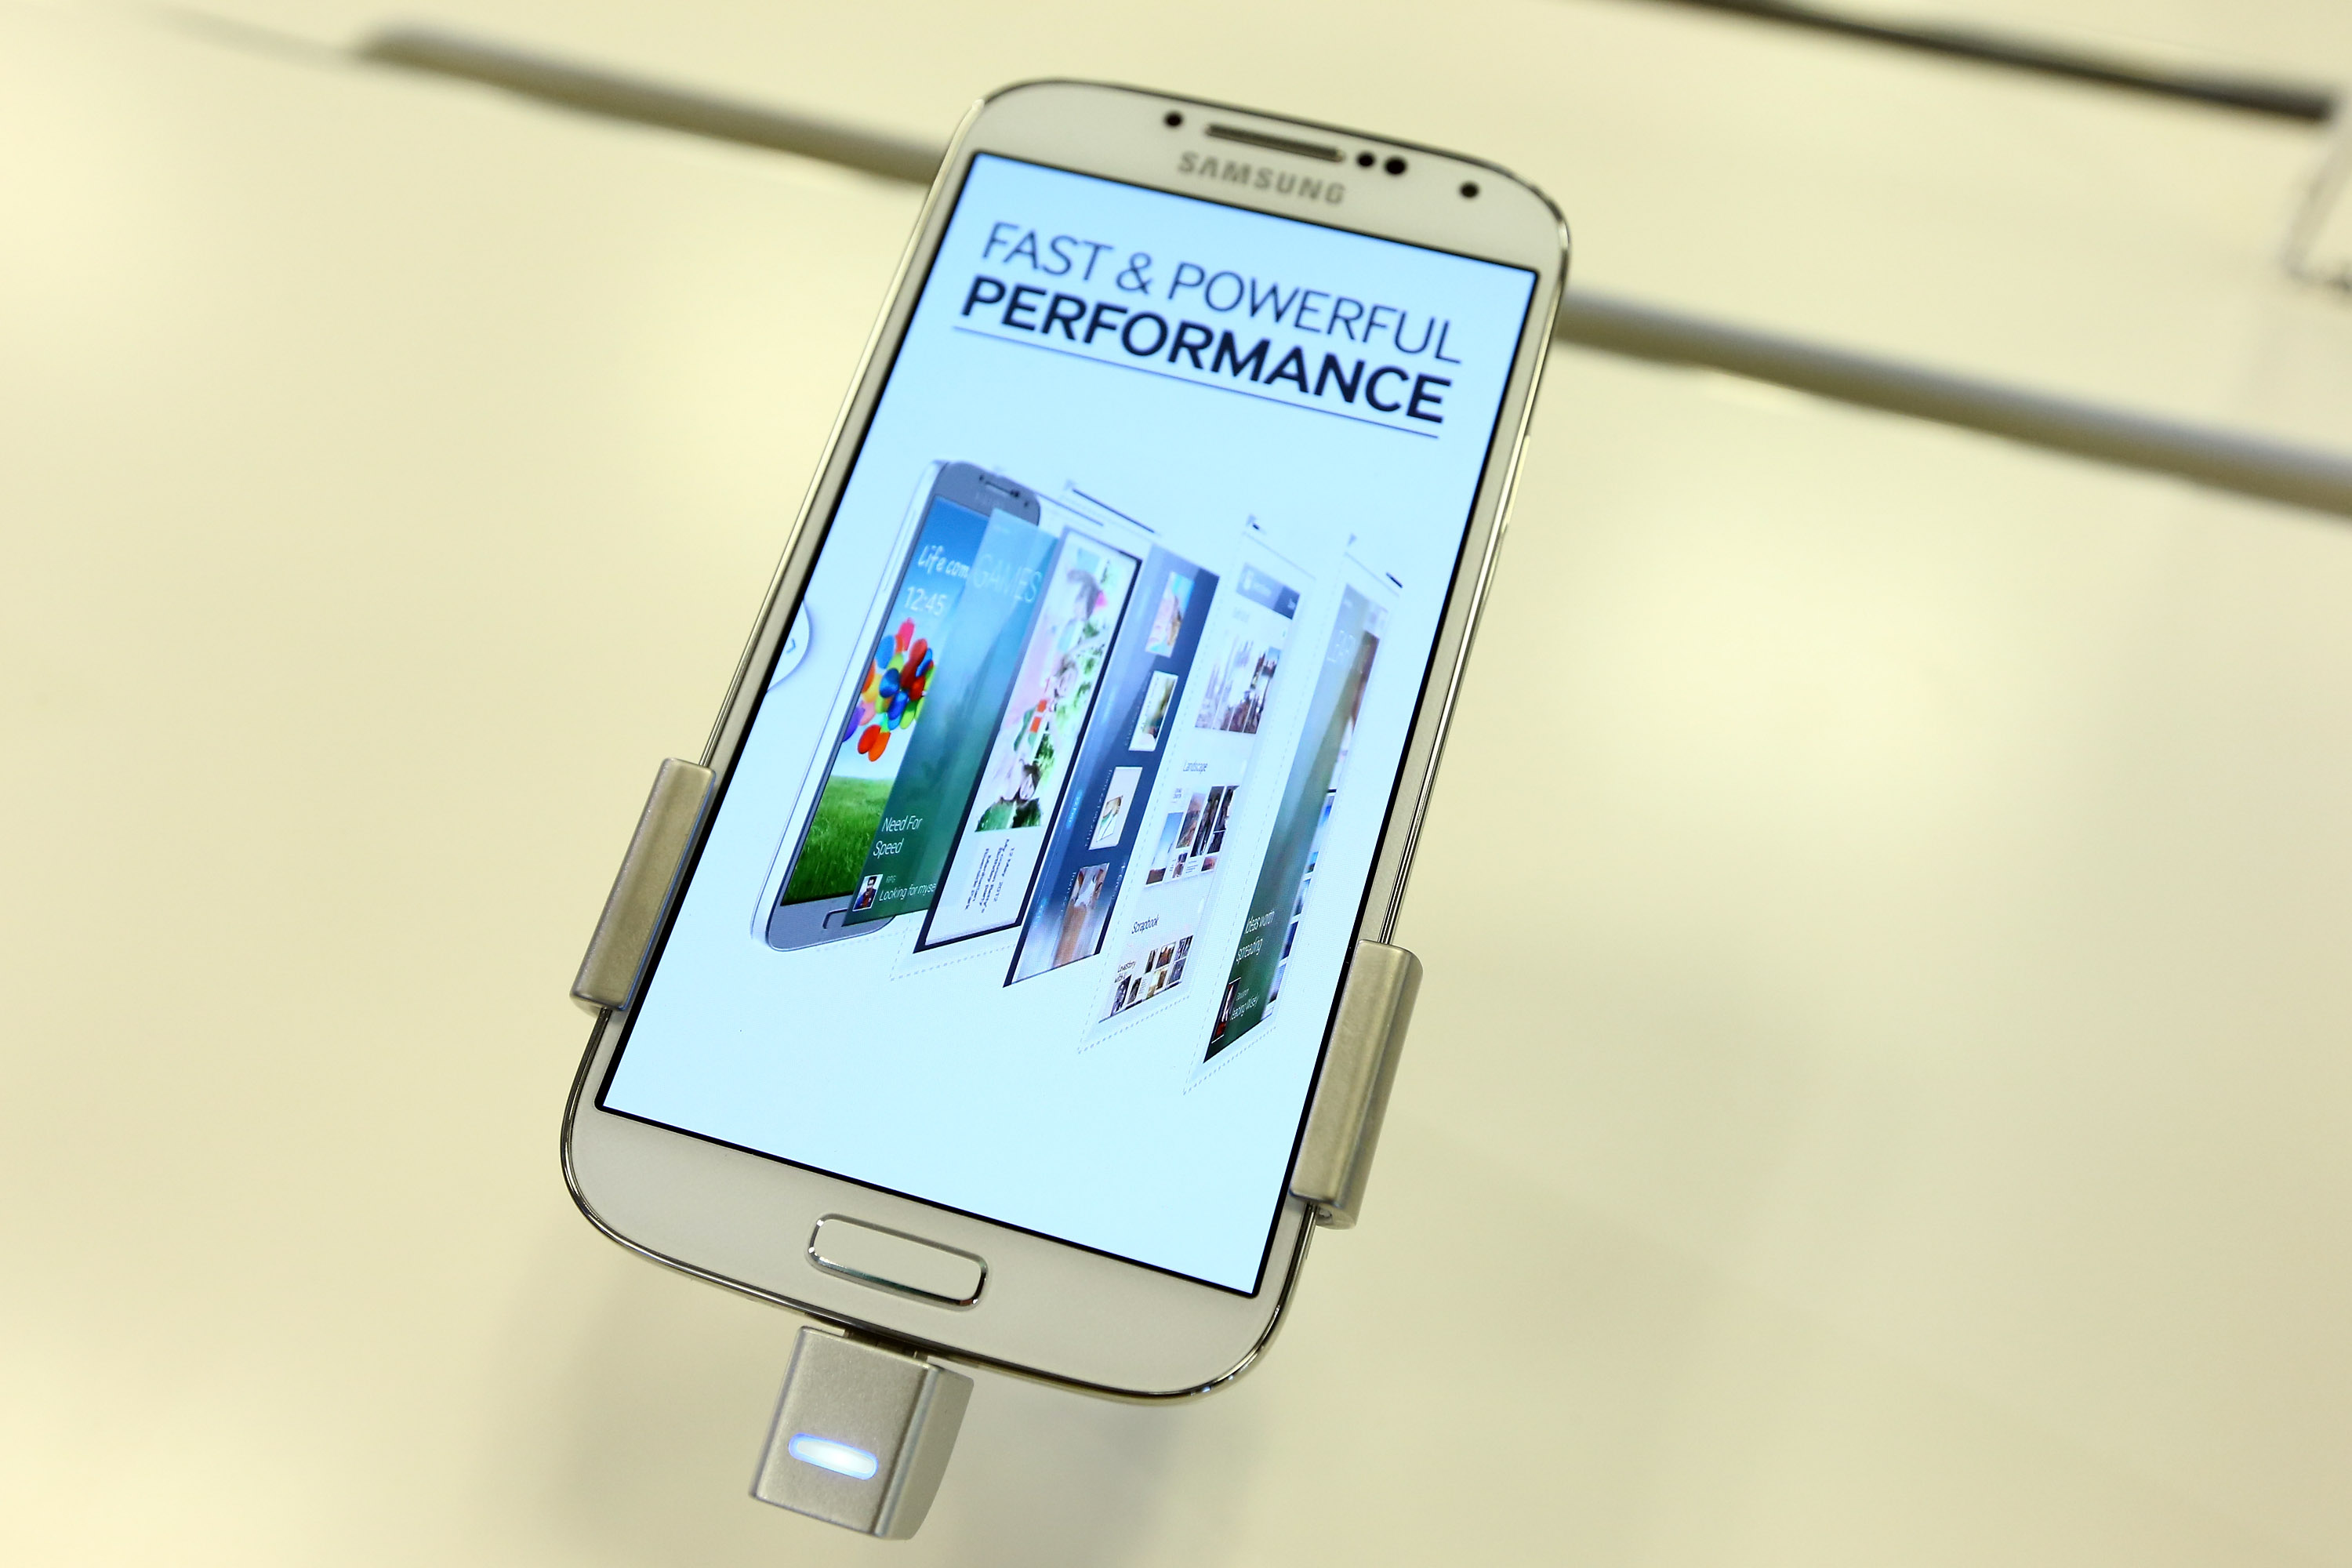 Samsung and Best Buy open Samsung Experience Shop with bash